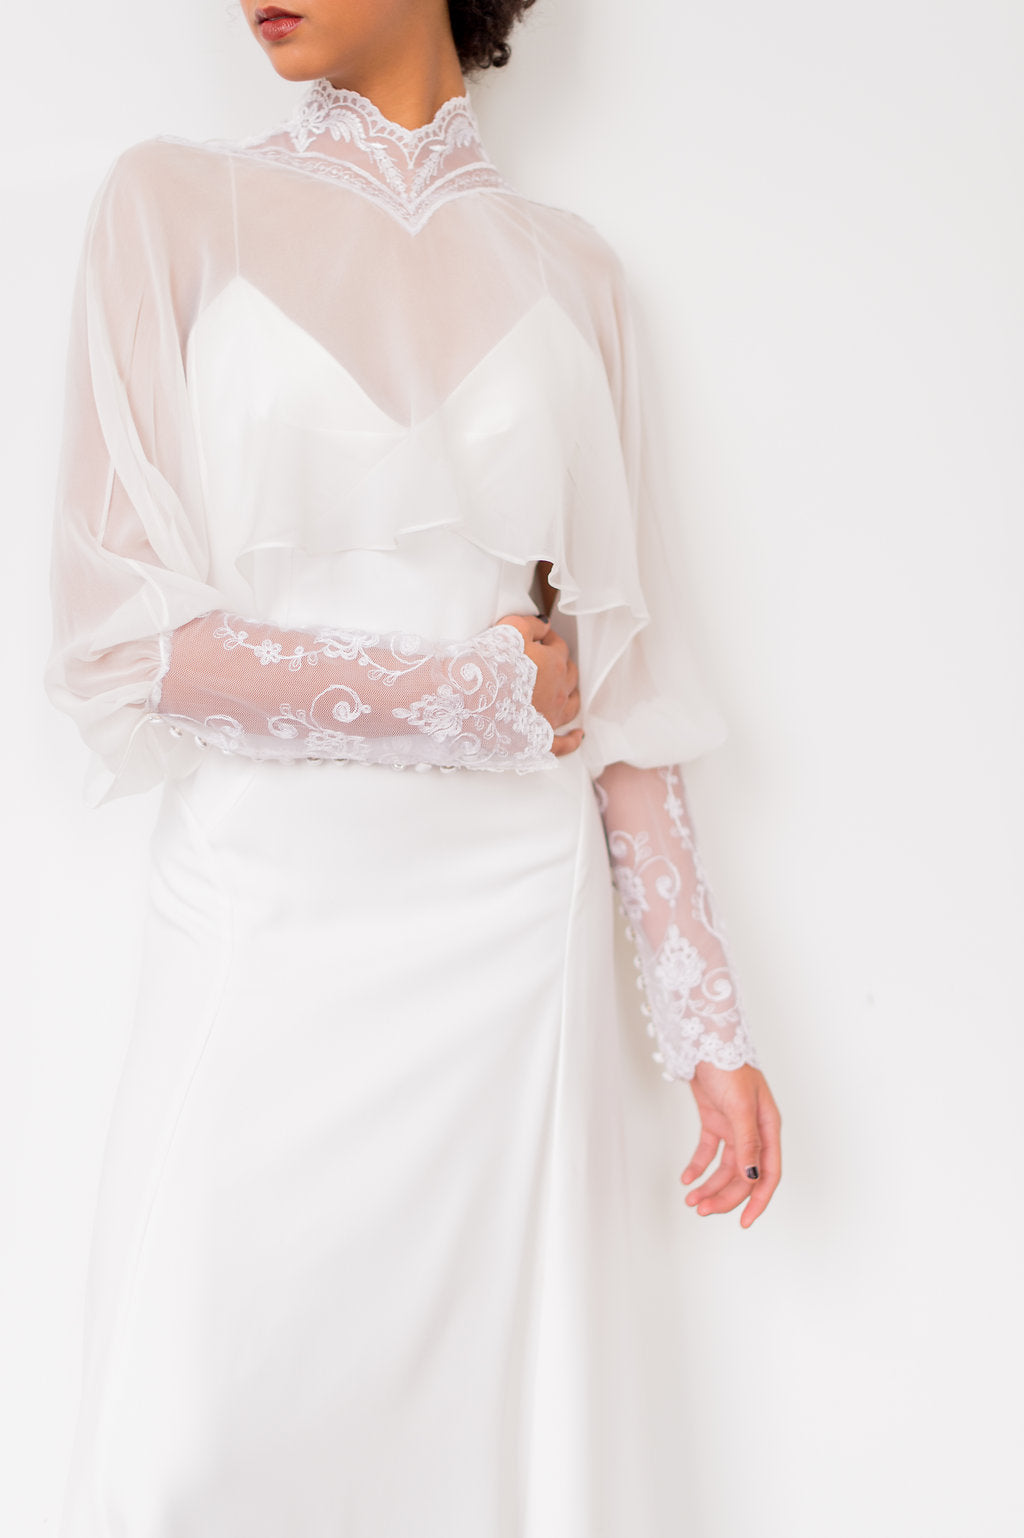 Chiffon and vintage lace wedding dress topper by Catherine Langlois. Photo by Whitney Heard.